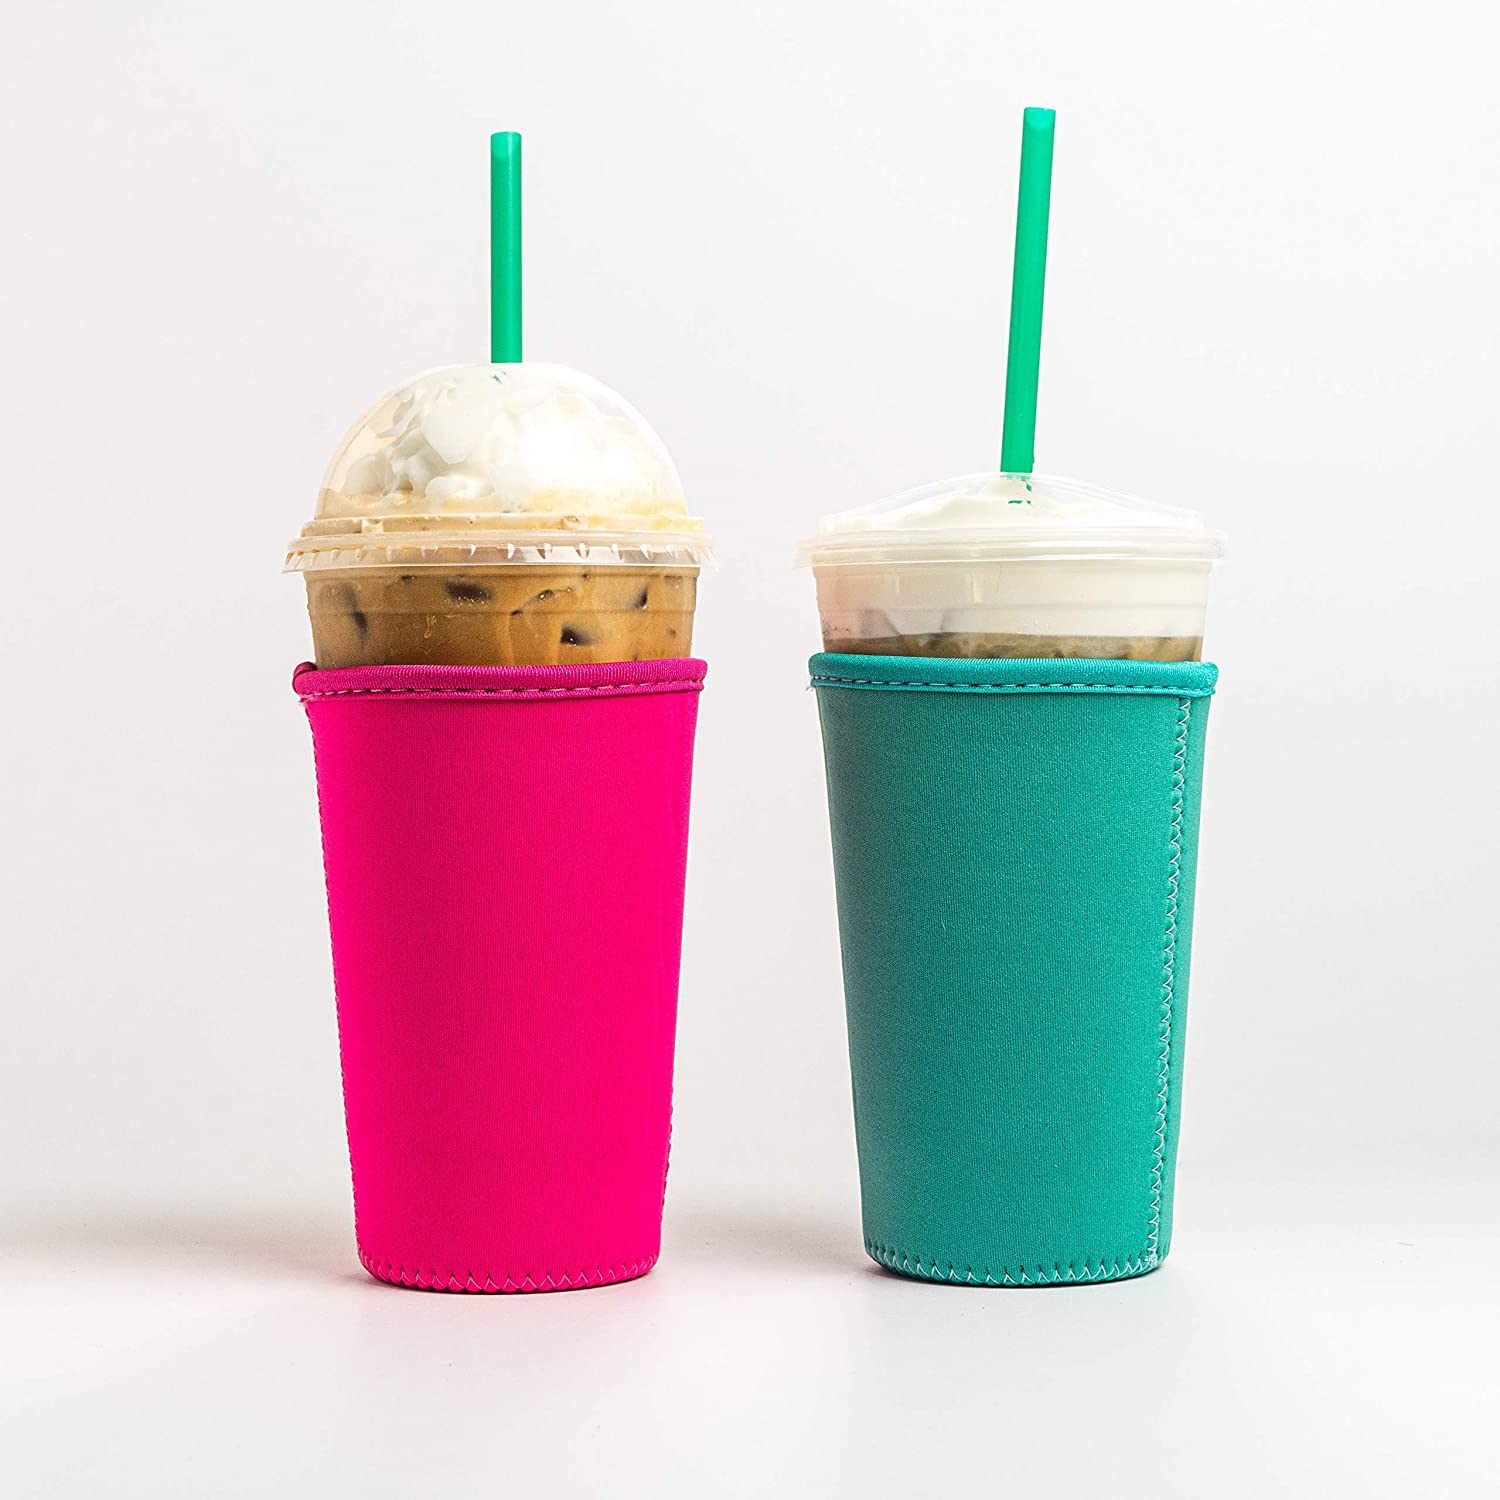 Reusable Insulated Neoprene Iced Coffee Beverage Sleeves | Cold Drink Cup Holder for Starbucks Coffee, McDonalds, Dunkin Donuts, Tim Hortons and More | (Turquoise & Pink, 2 PK Medium 22-24oz)